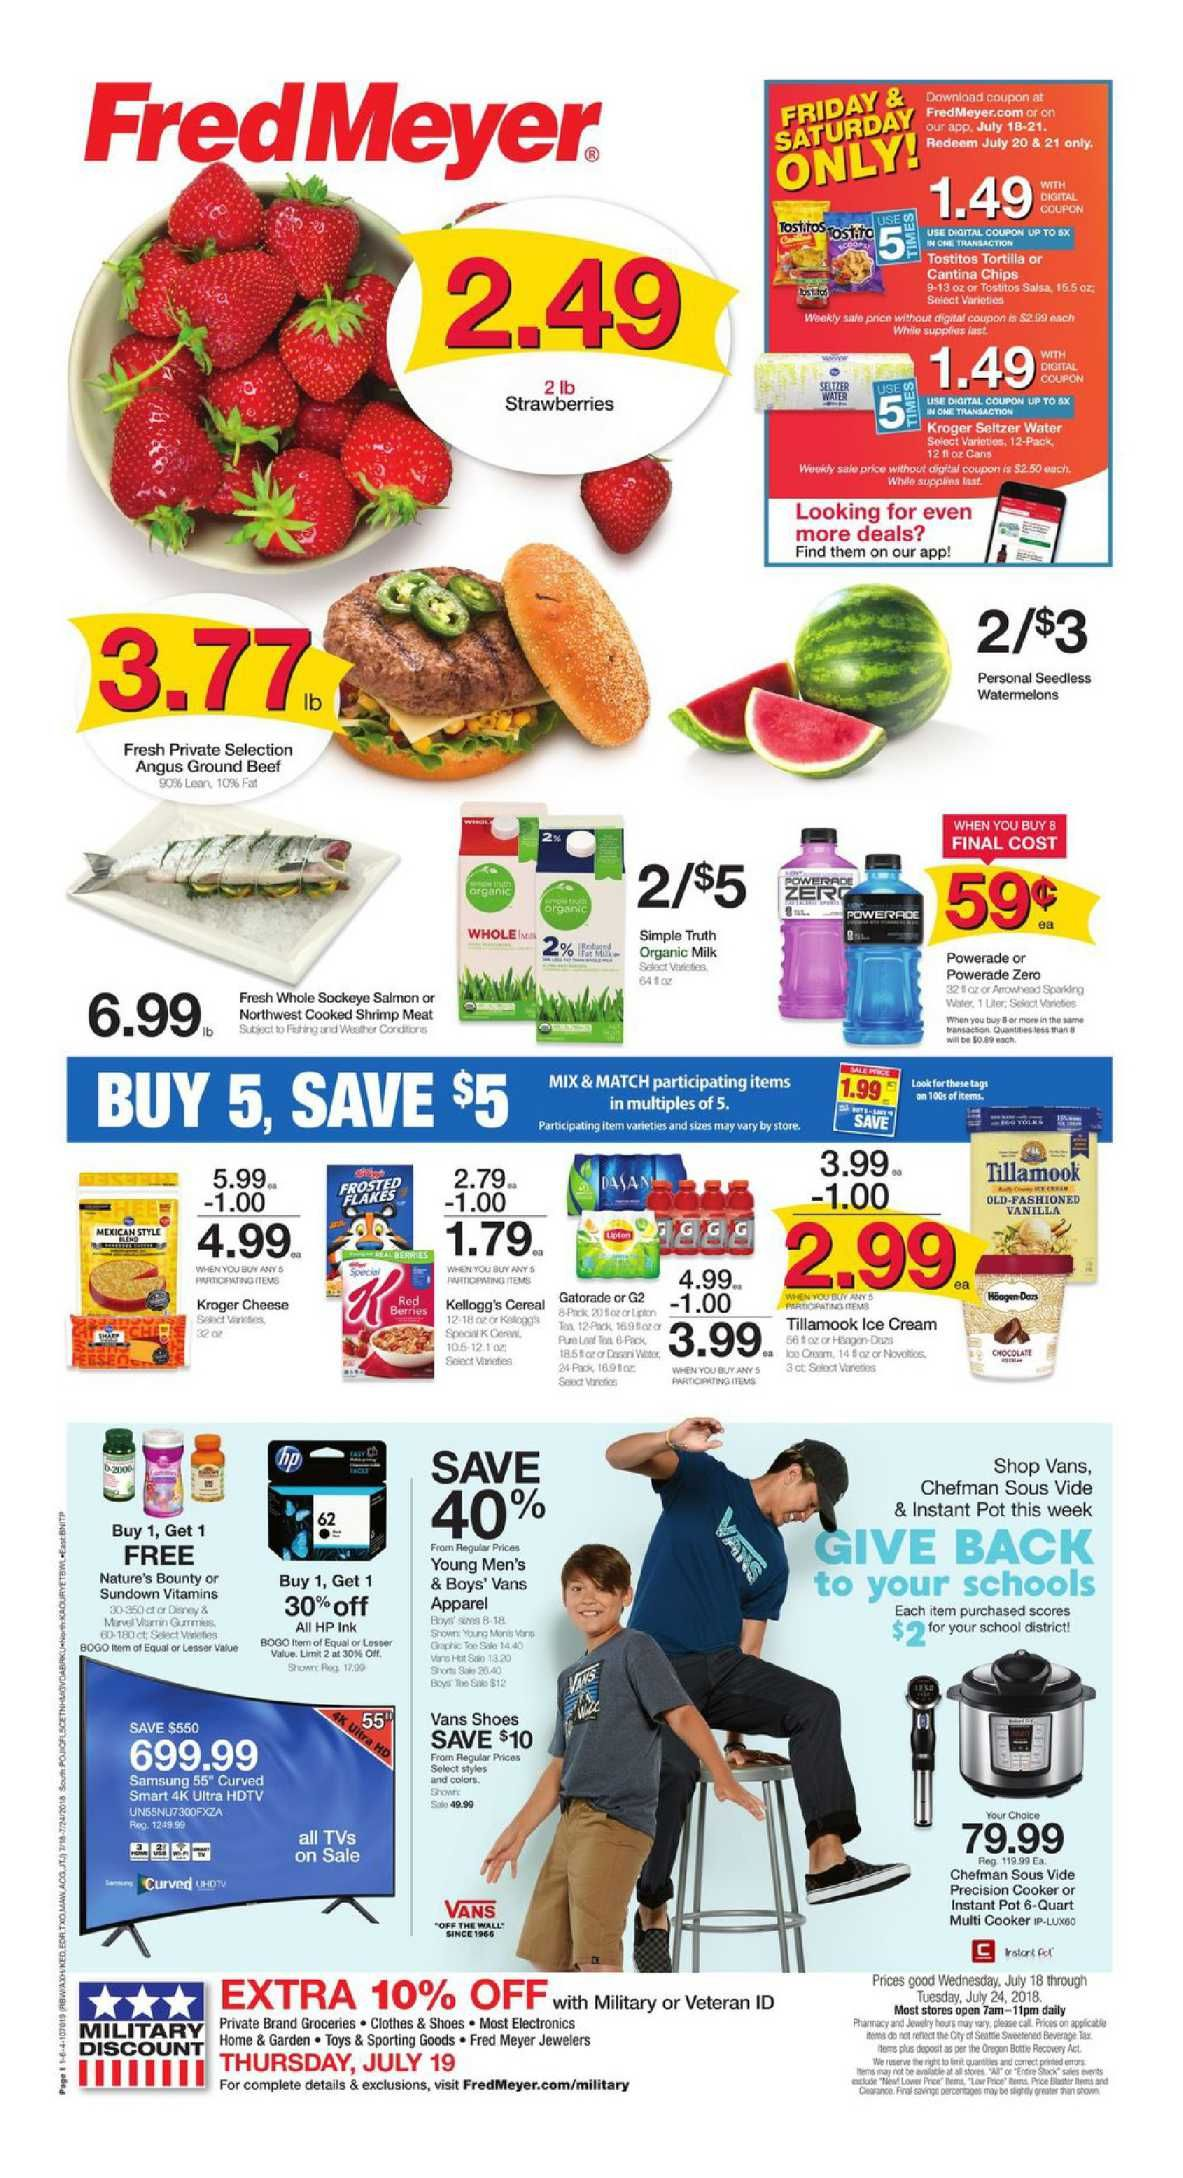 e947fc00eab5 Check Latest Fred Meyer Weekly ad flyer July 18 – 24